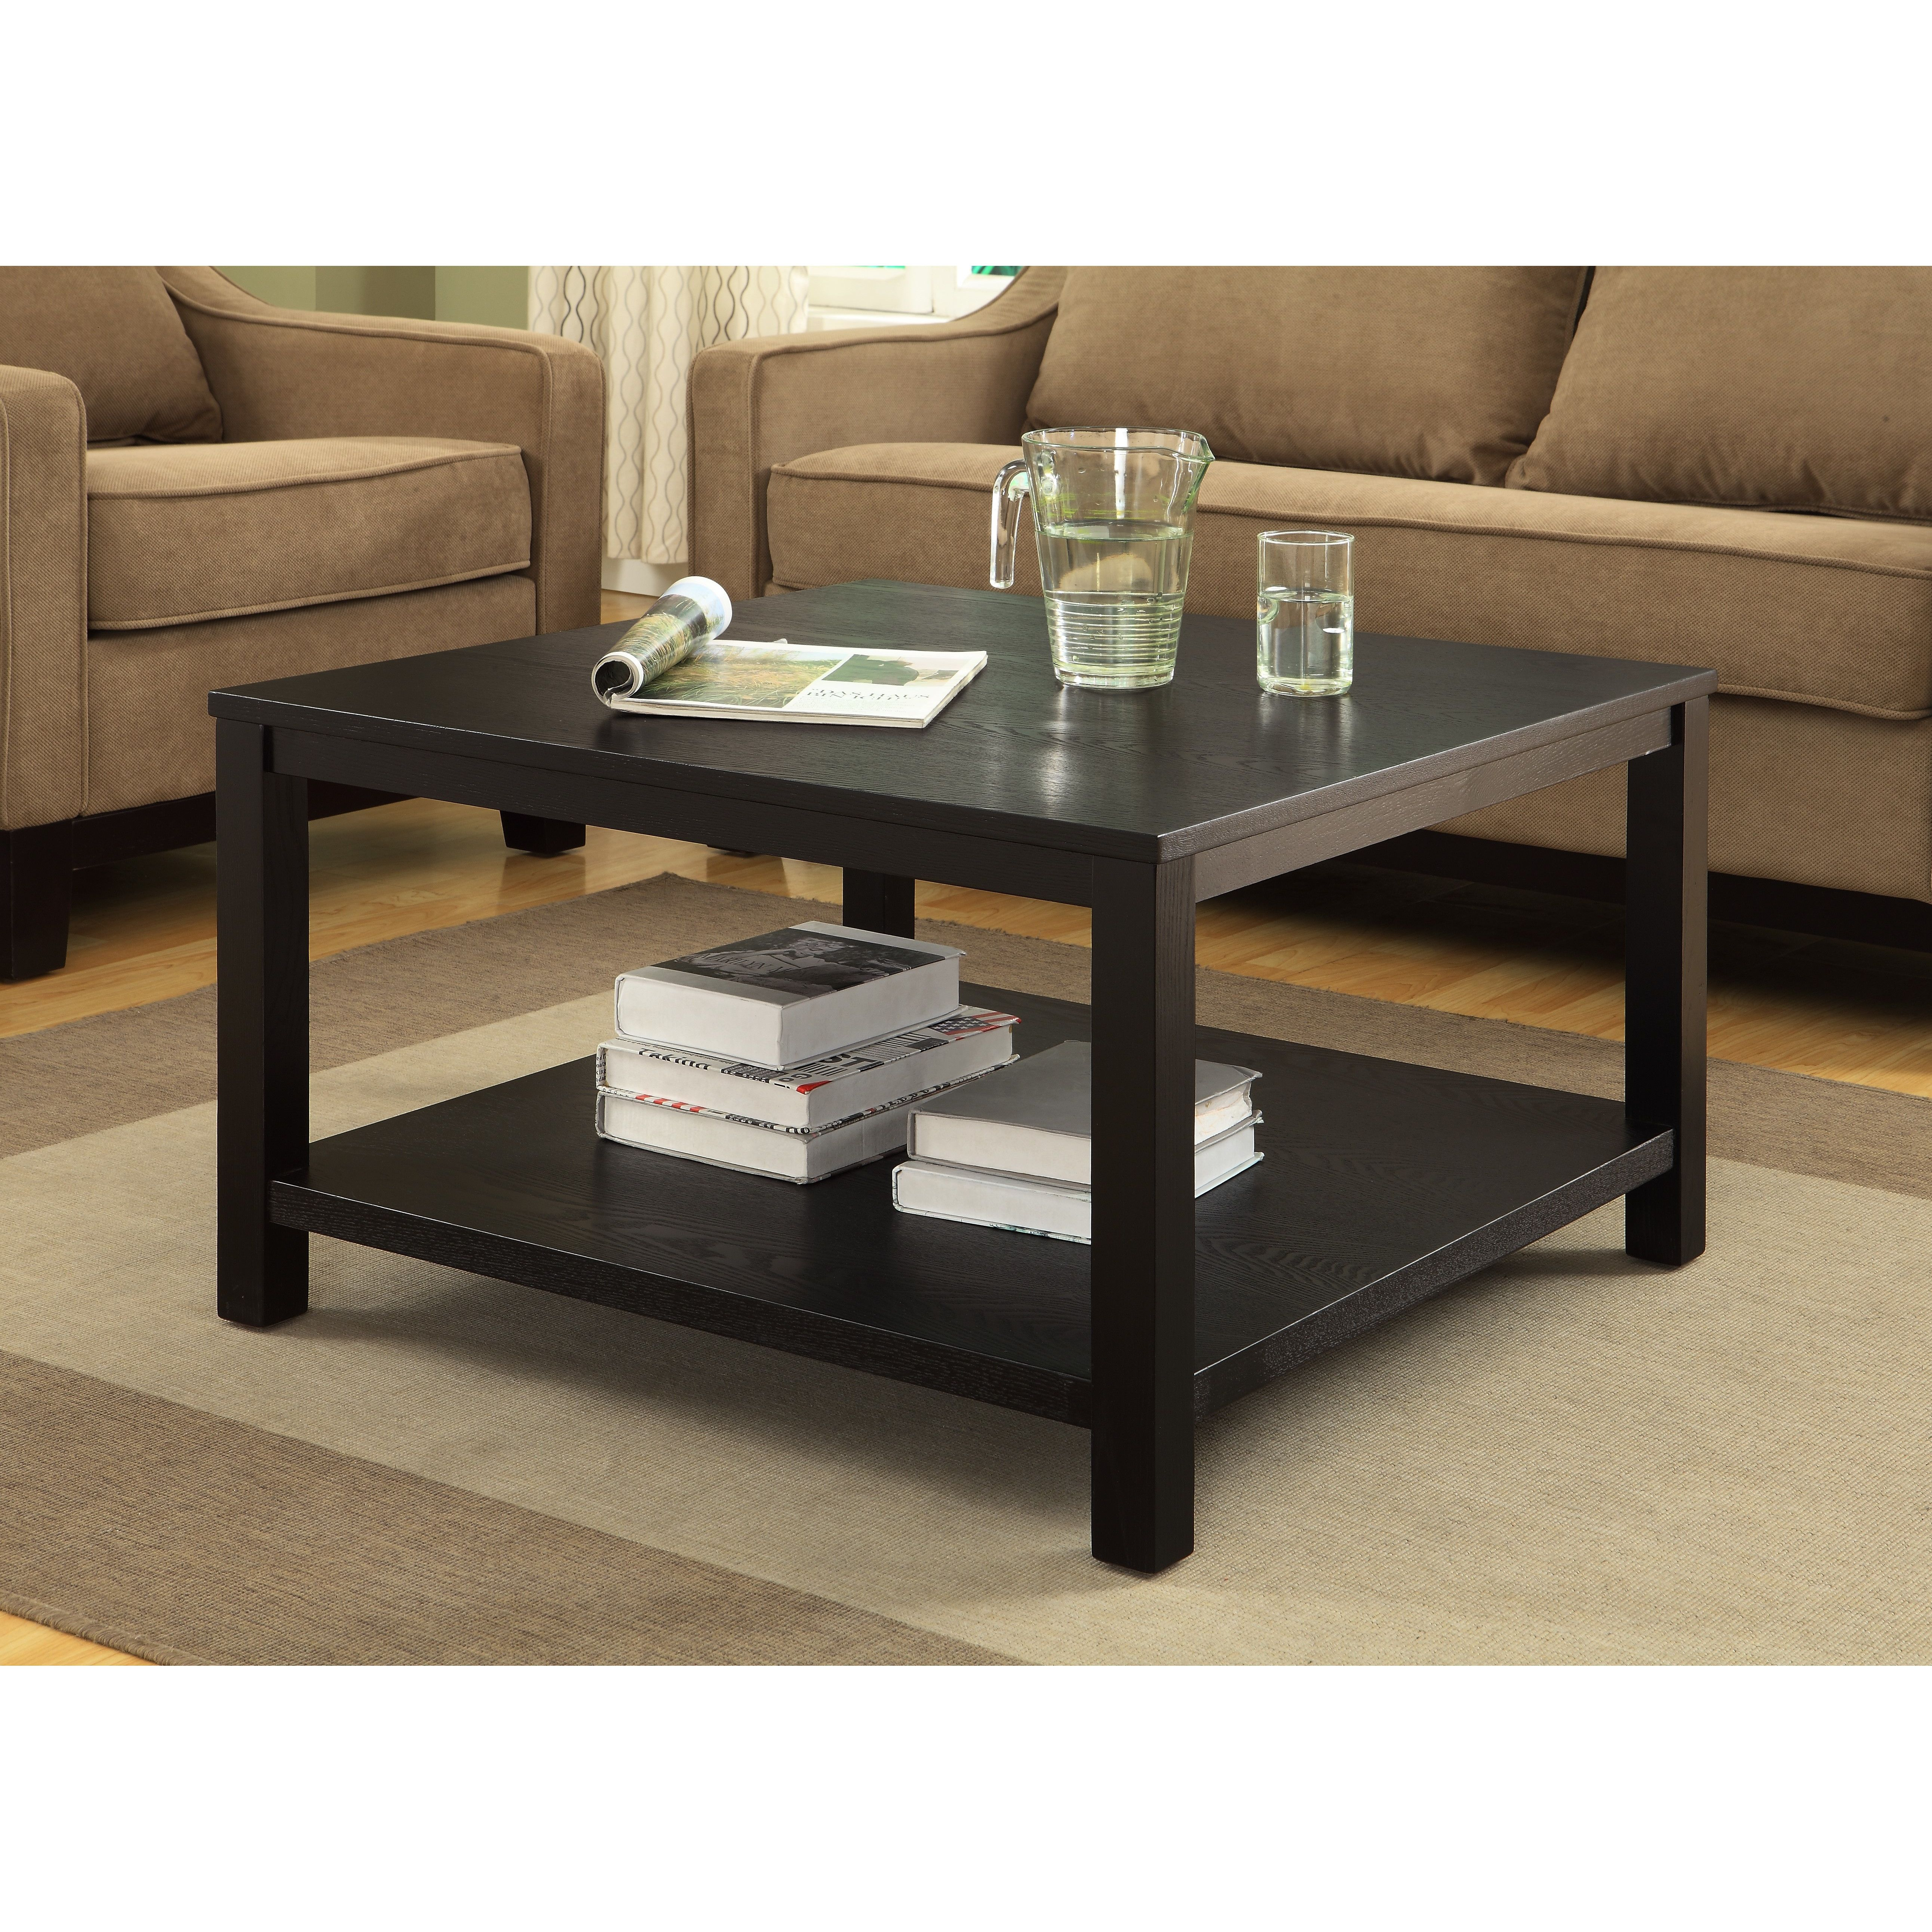 Crown Heights Coffee Table Coffee Table Coffee Table Square Furniture